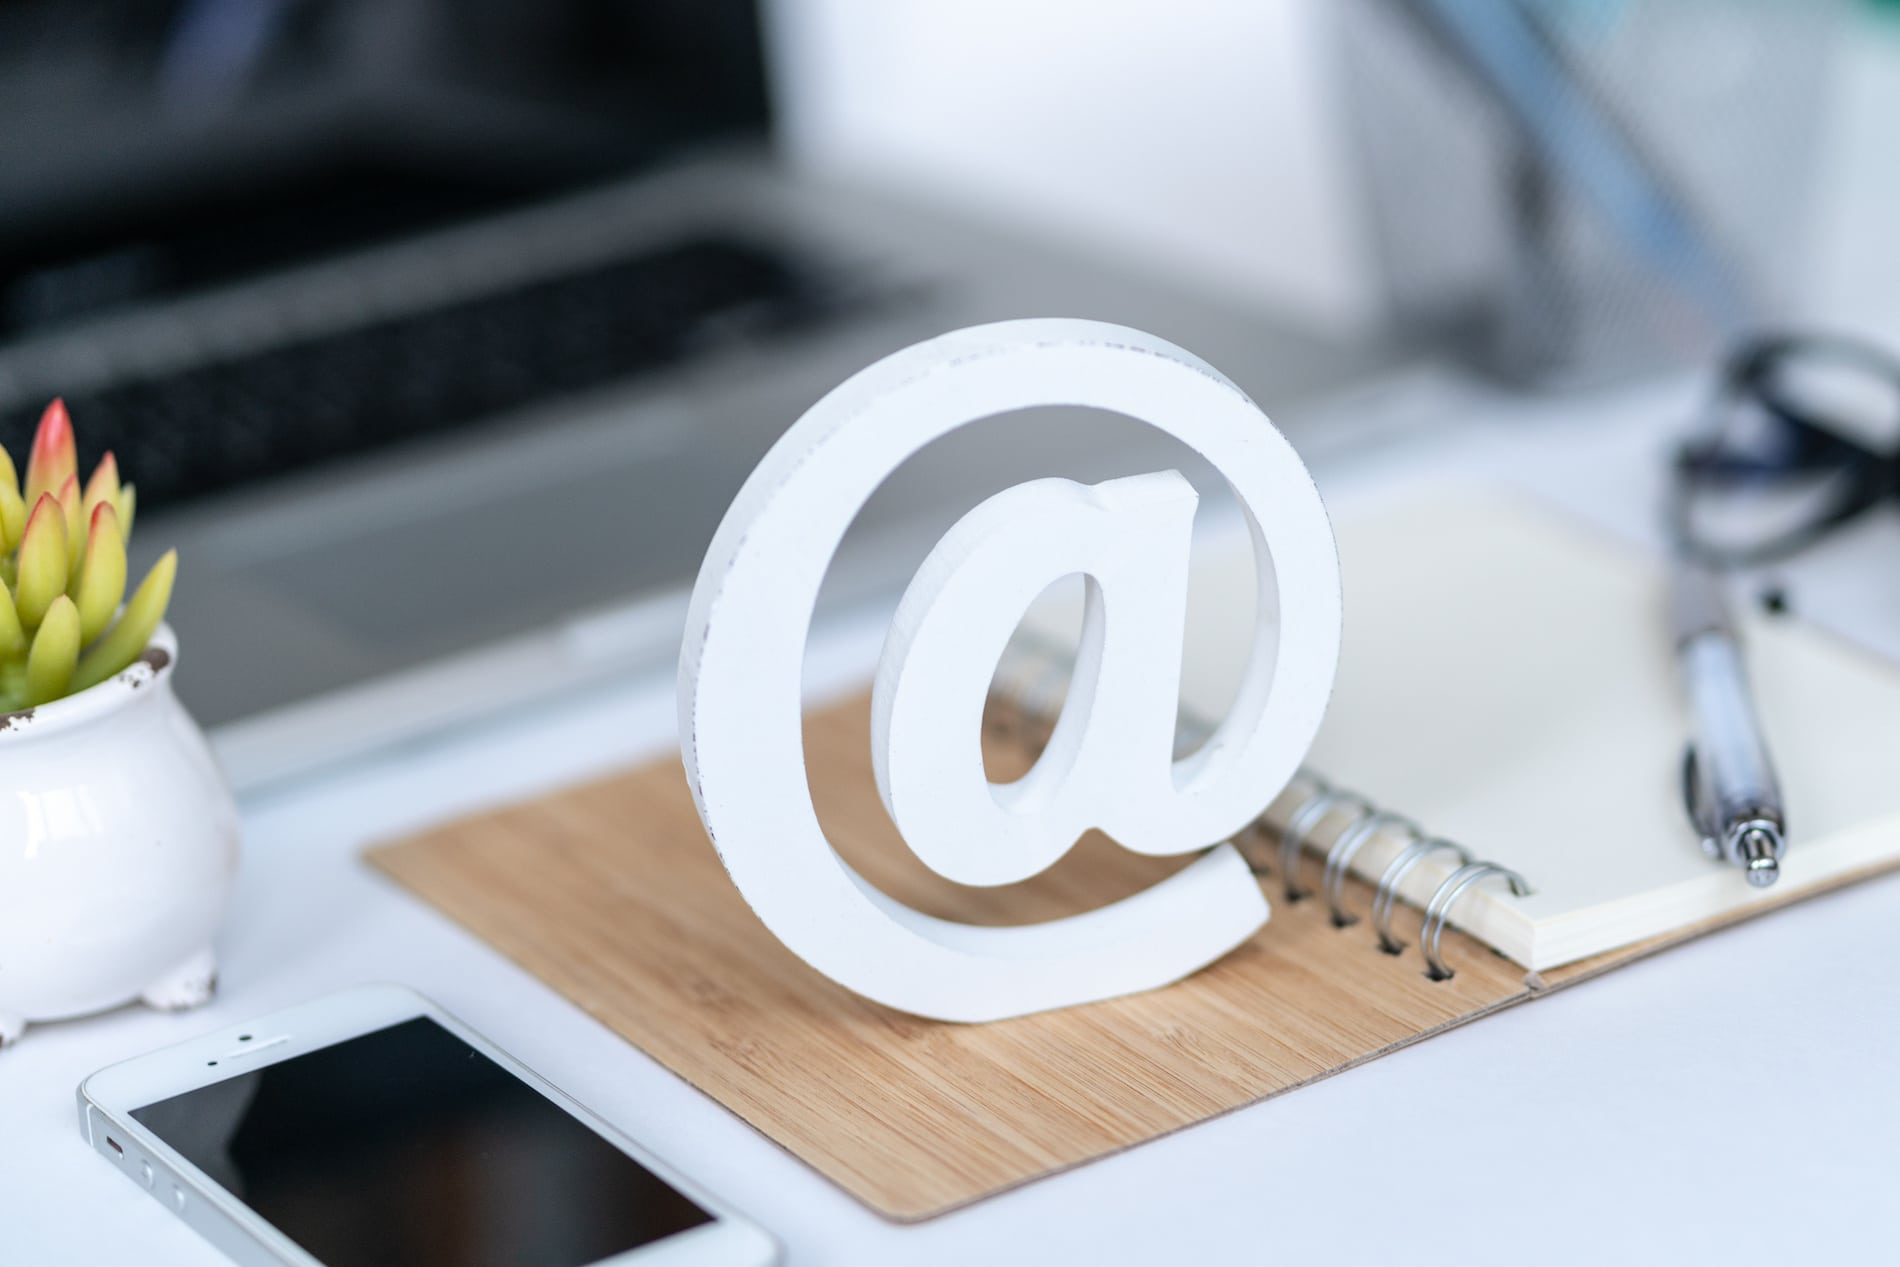 Smarter Email Contact Management Powered by Smart WiFi featured image